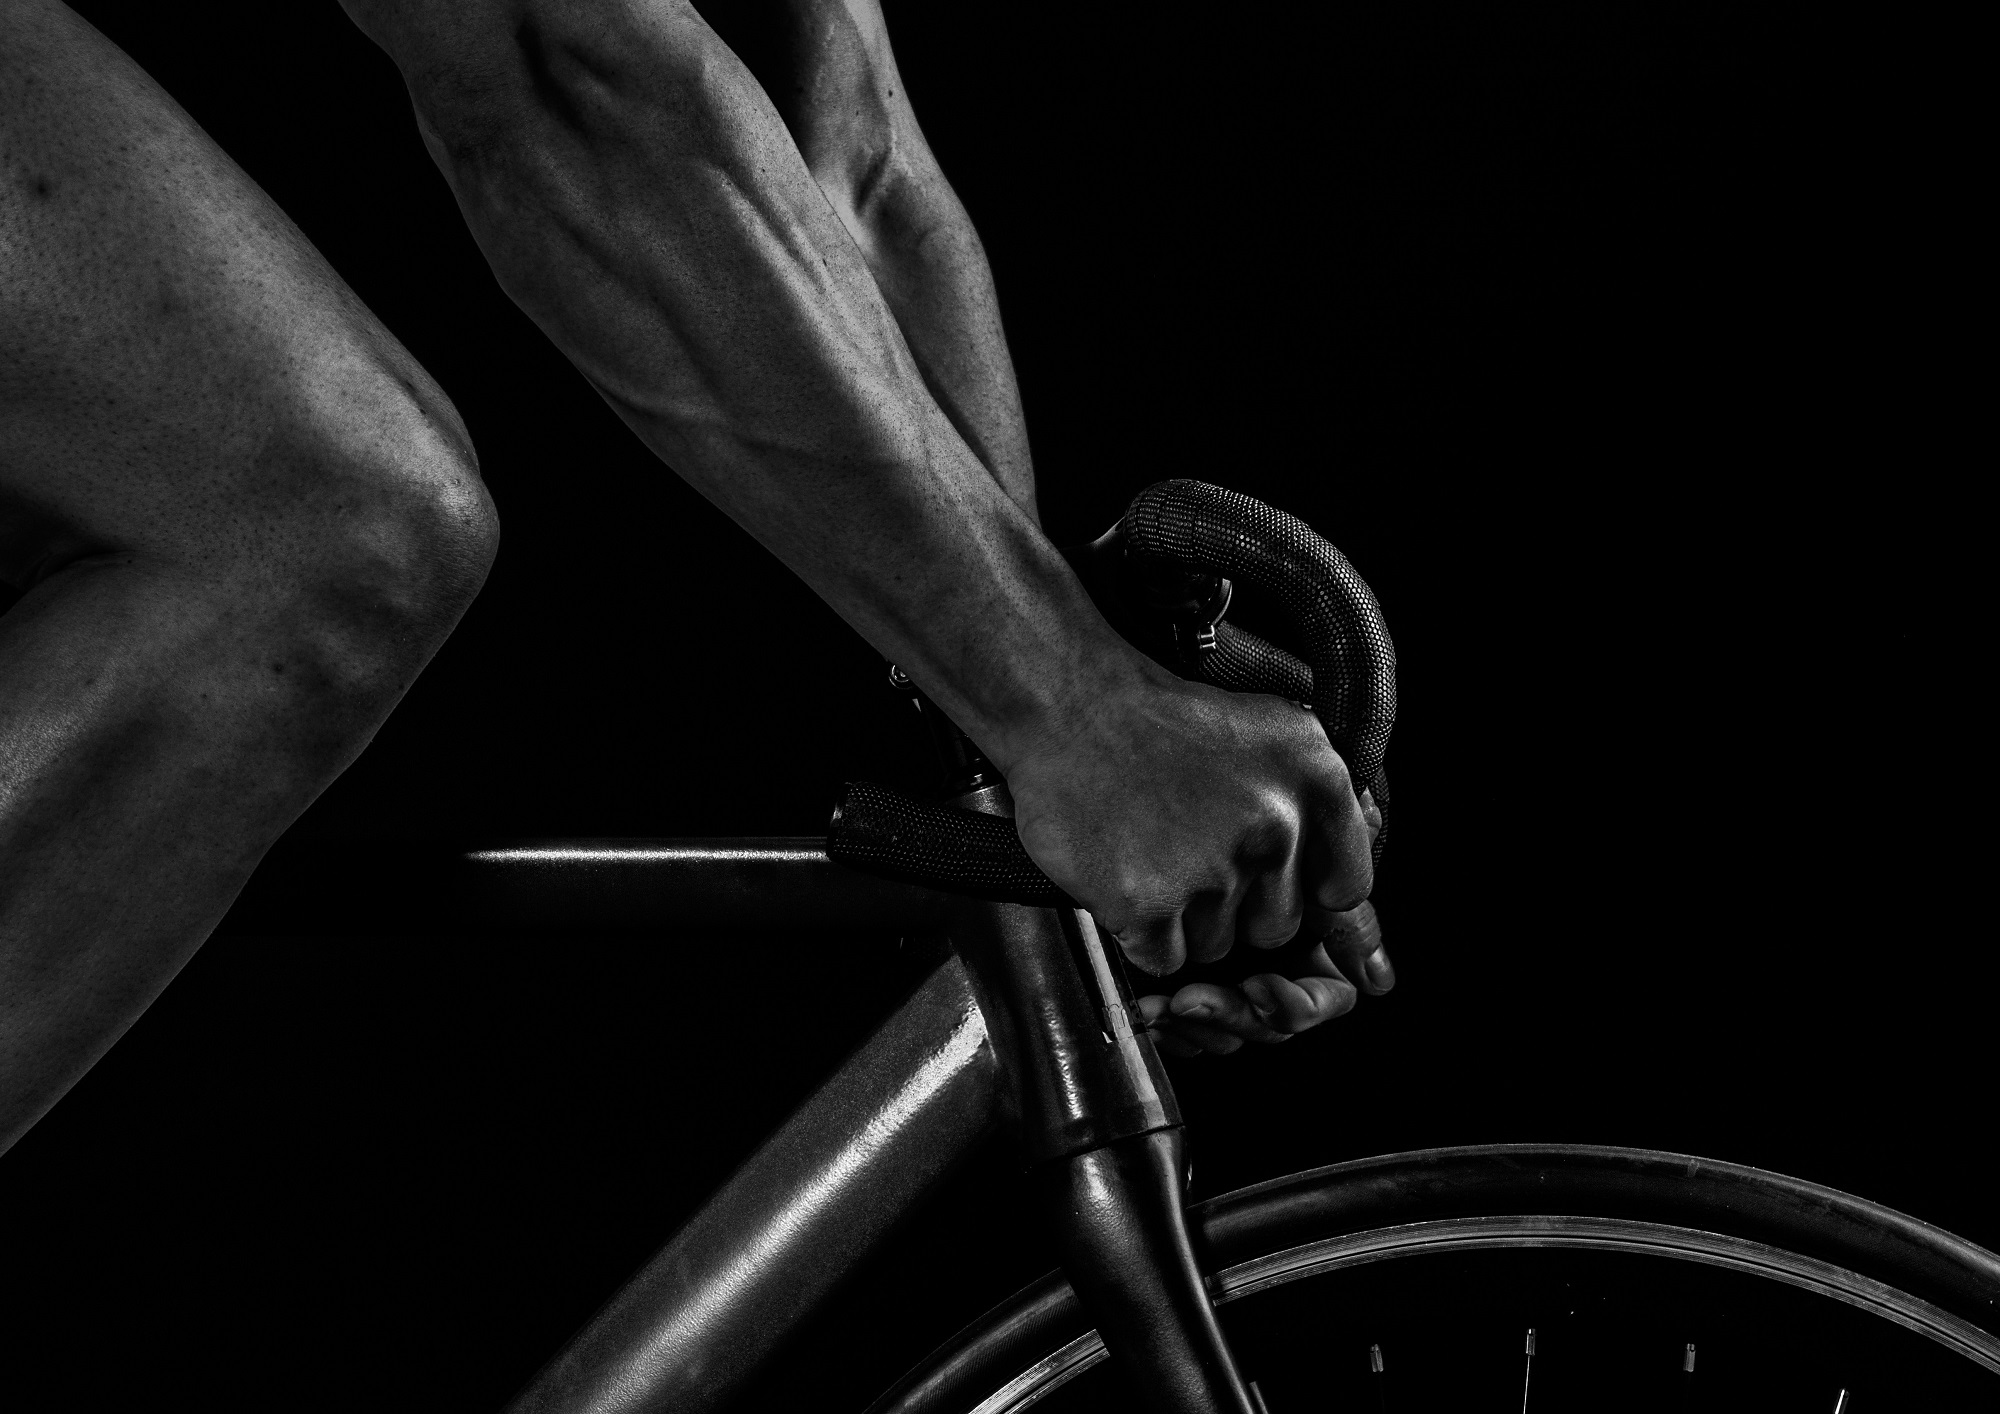 Bike fitting is not the same as finding the right size bike. Although many people confuse the two, they are very different. If you want to stay injury-free and have higher speed and power, you'll want to have a properly fitted bike.